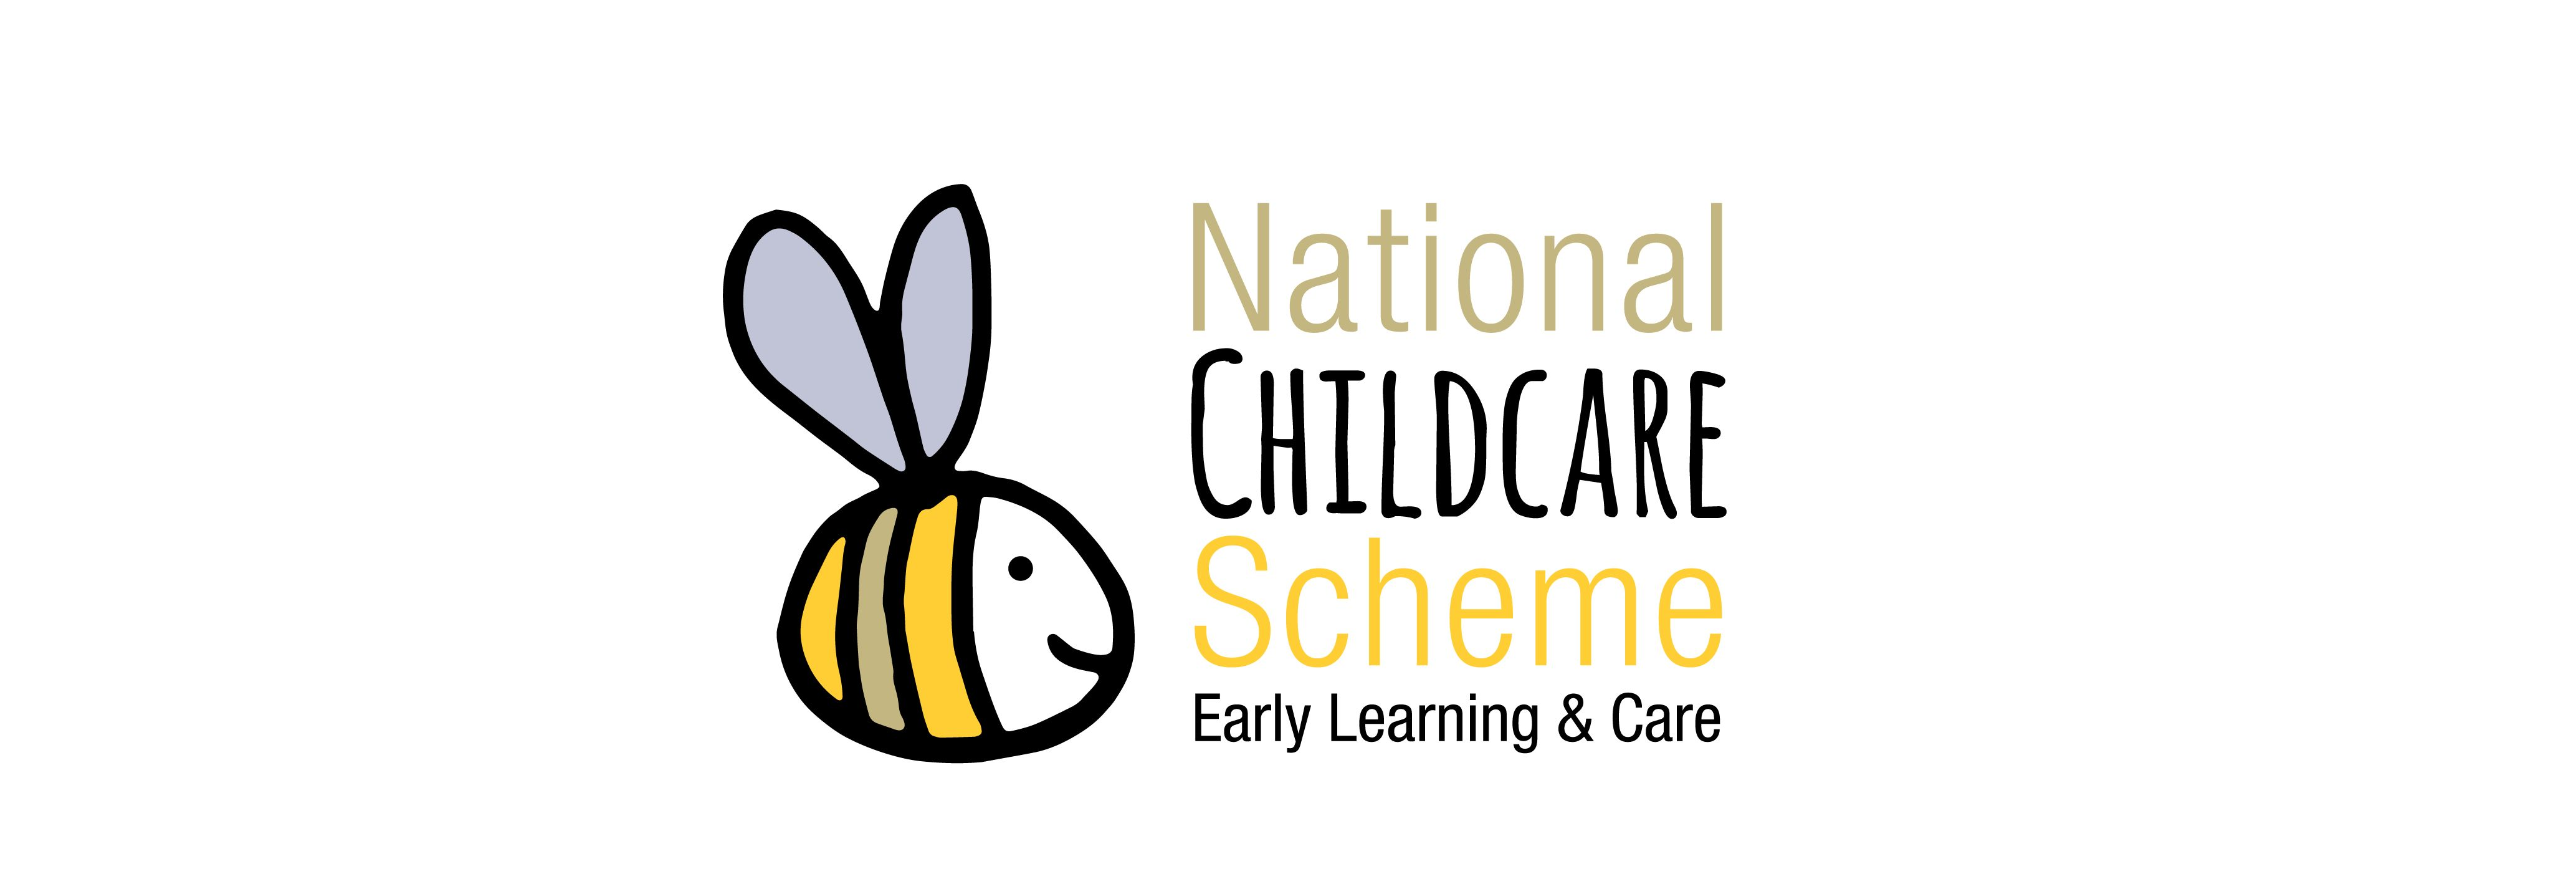 National Childcare Scheme Launched!!